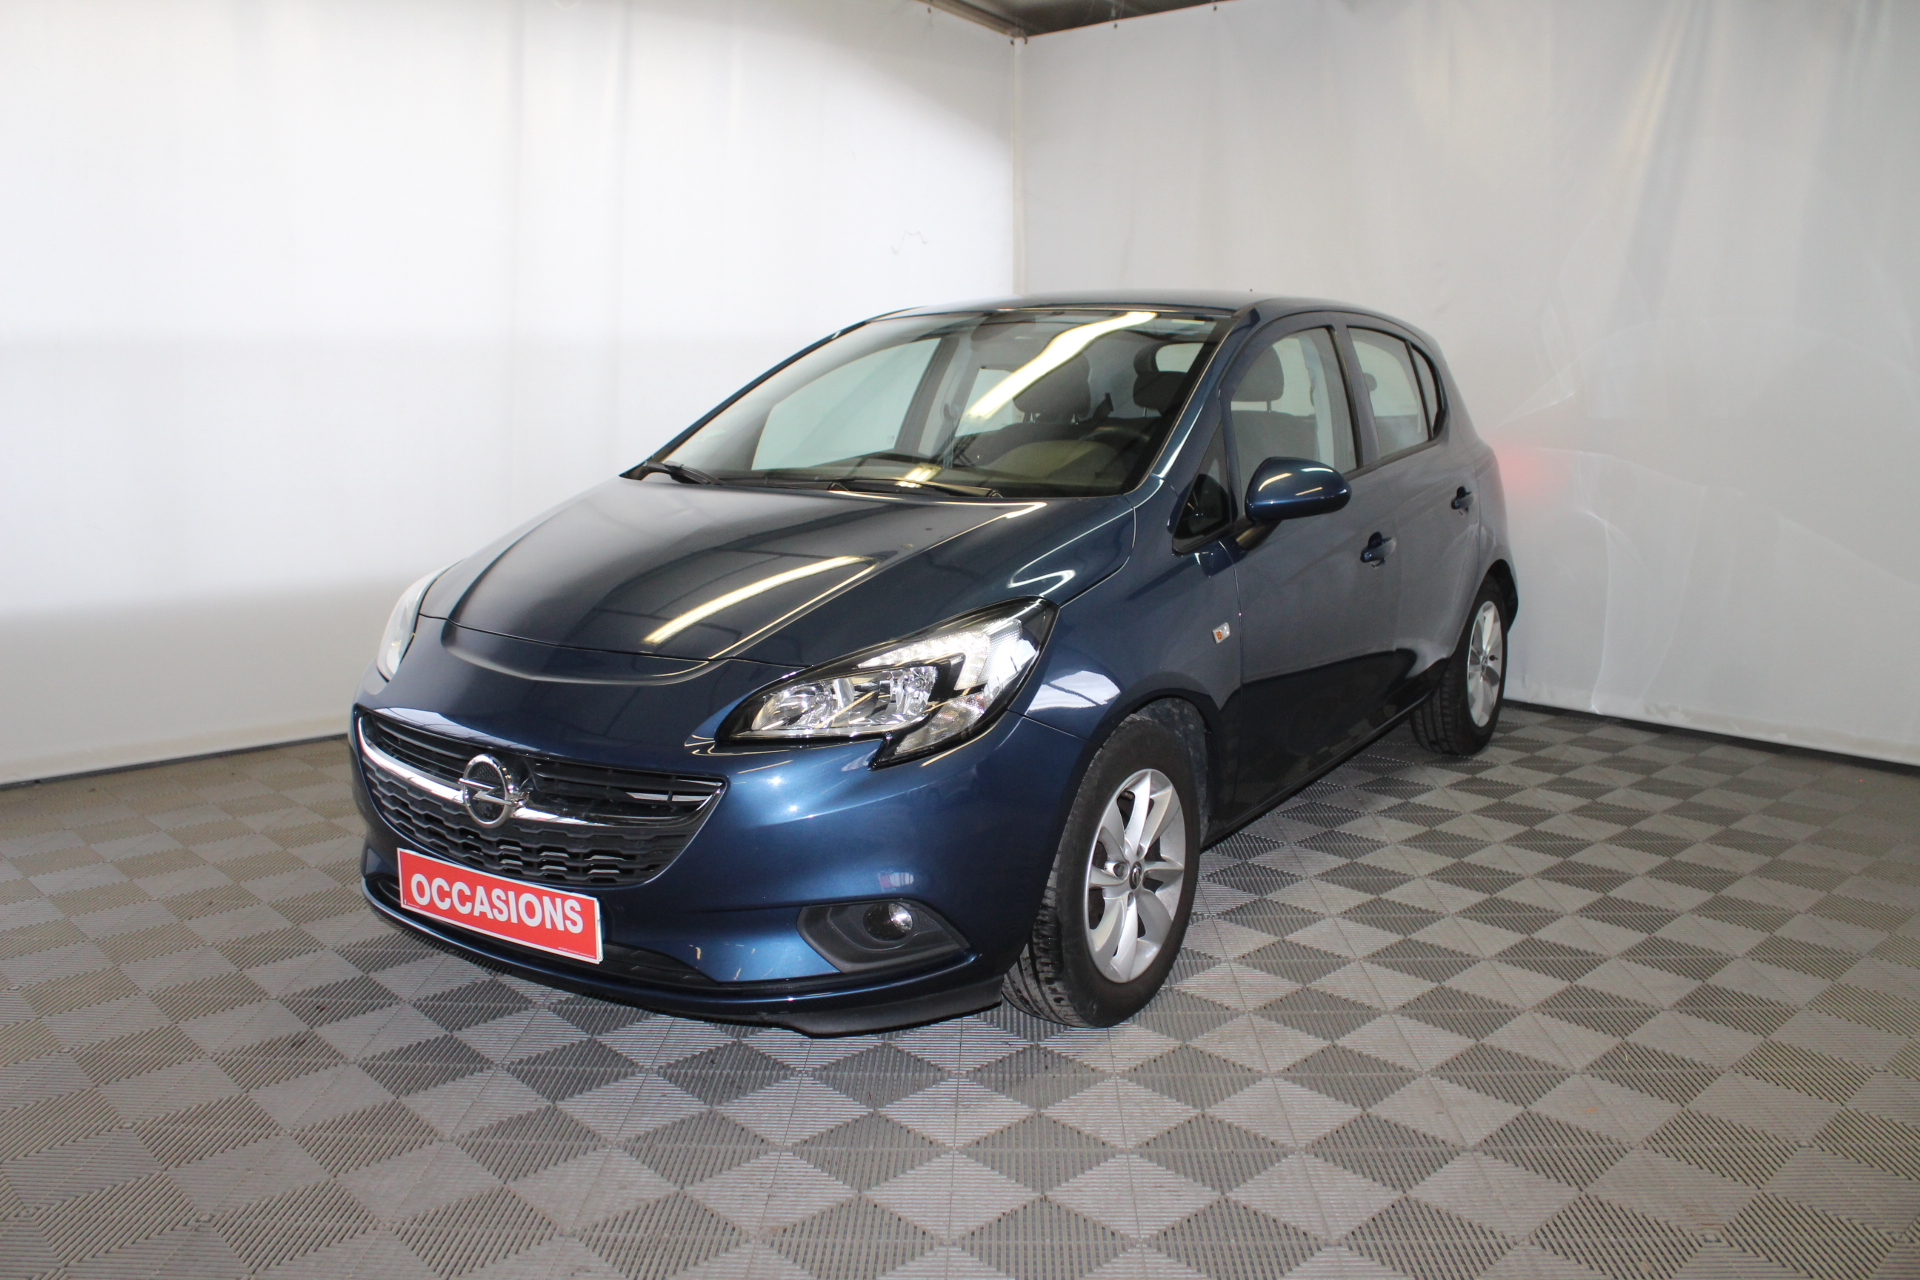 OPEL CORSA 2016 à 8400 € - Photo n°1